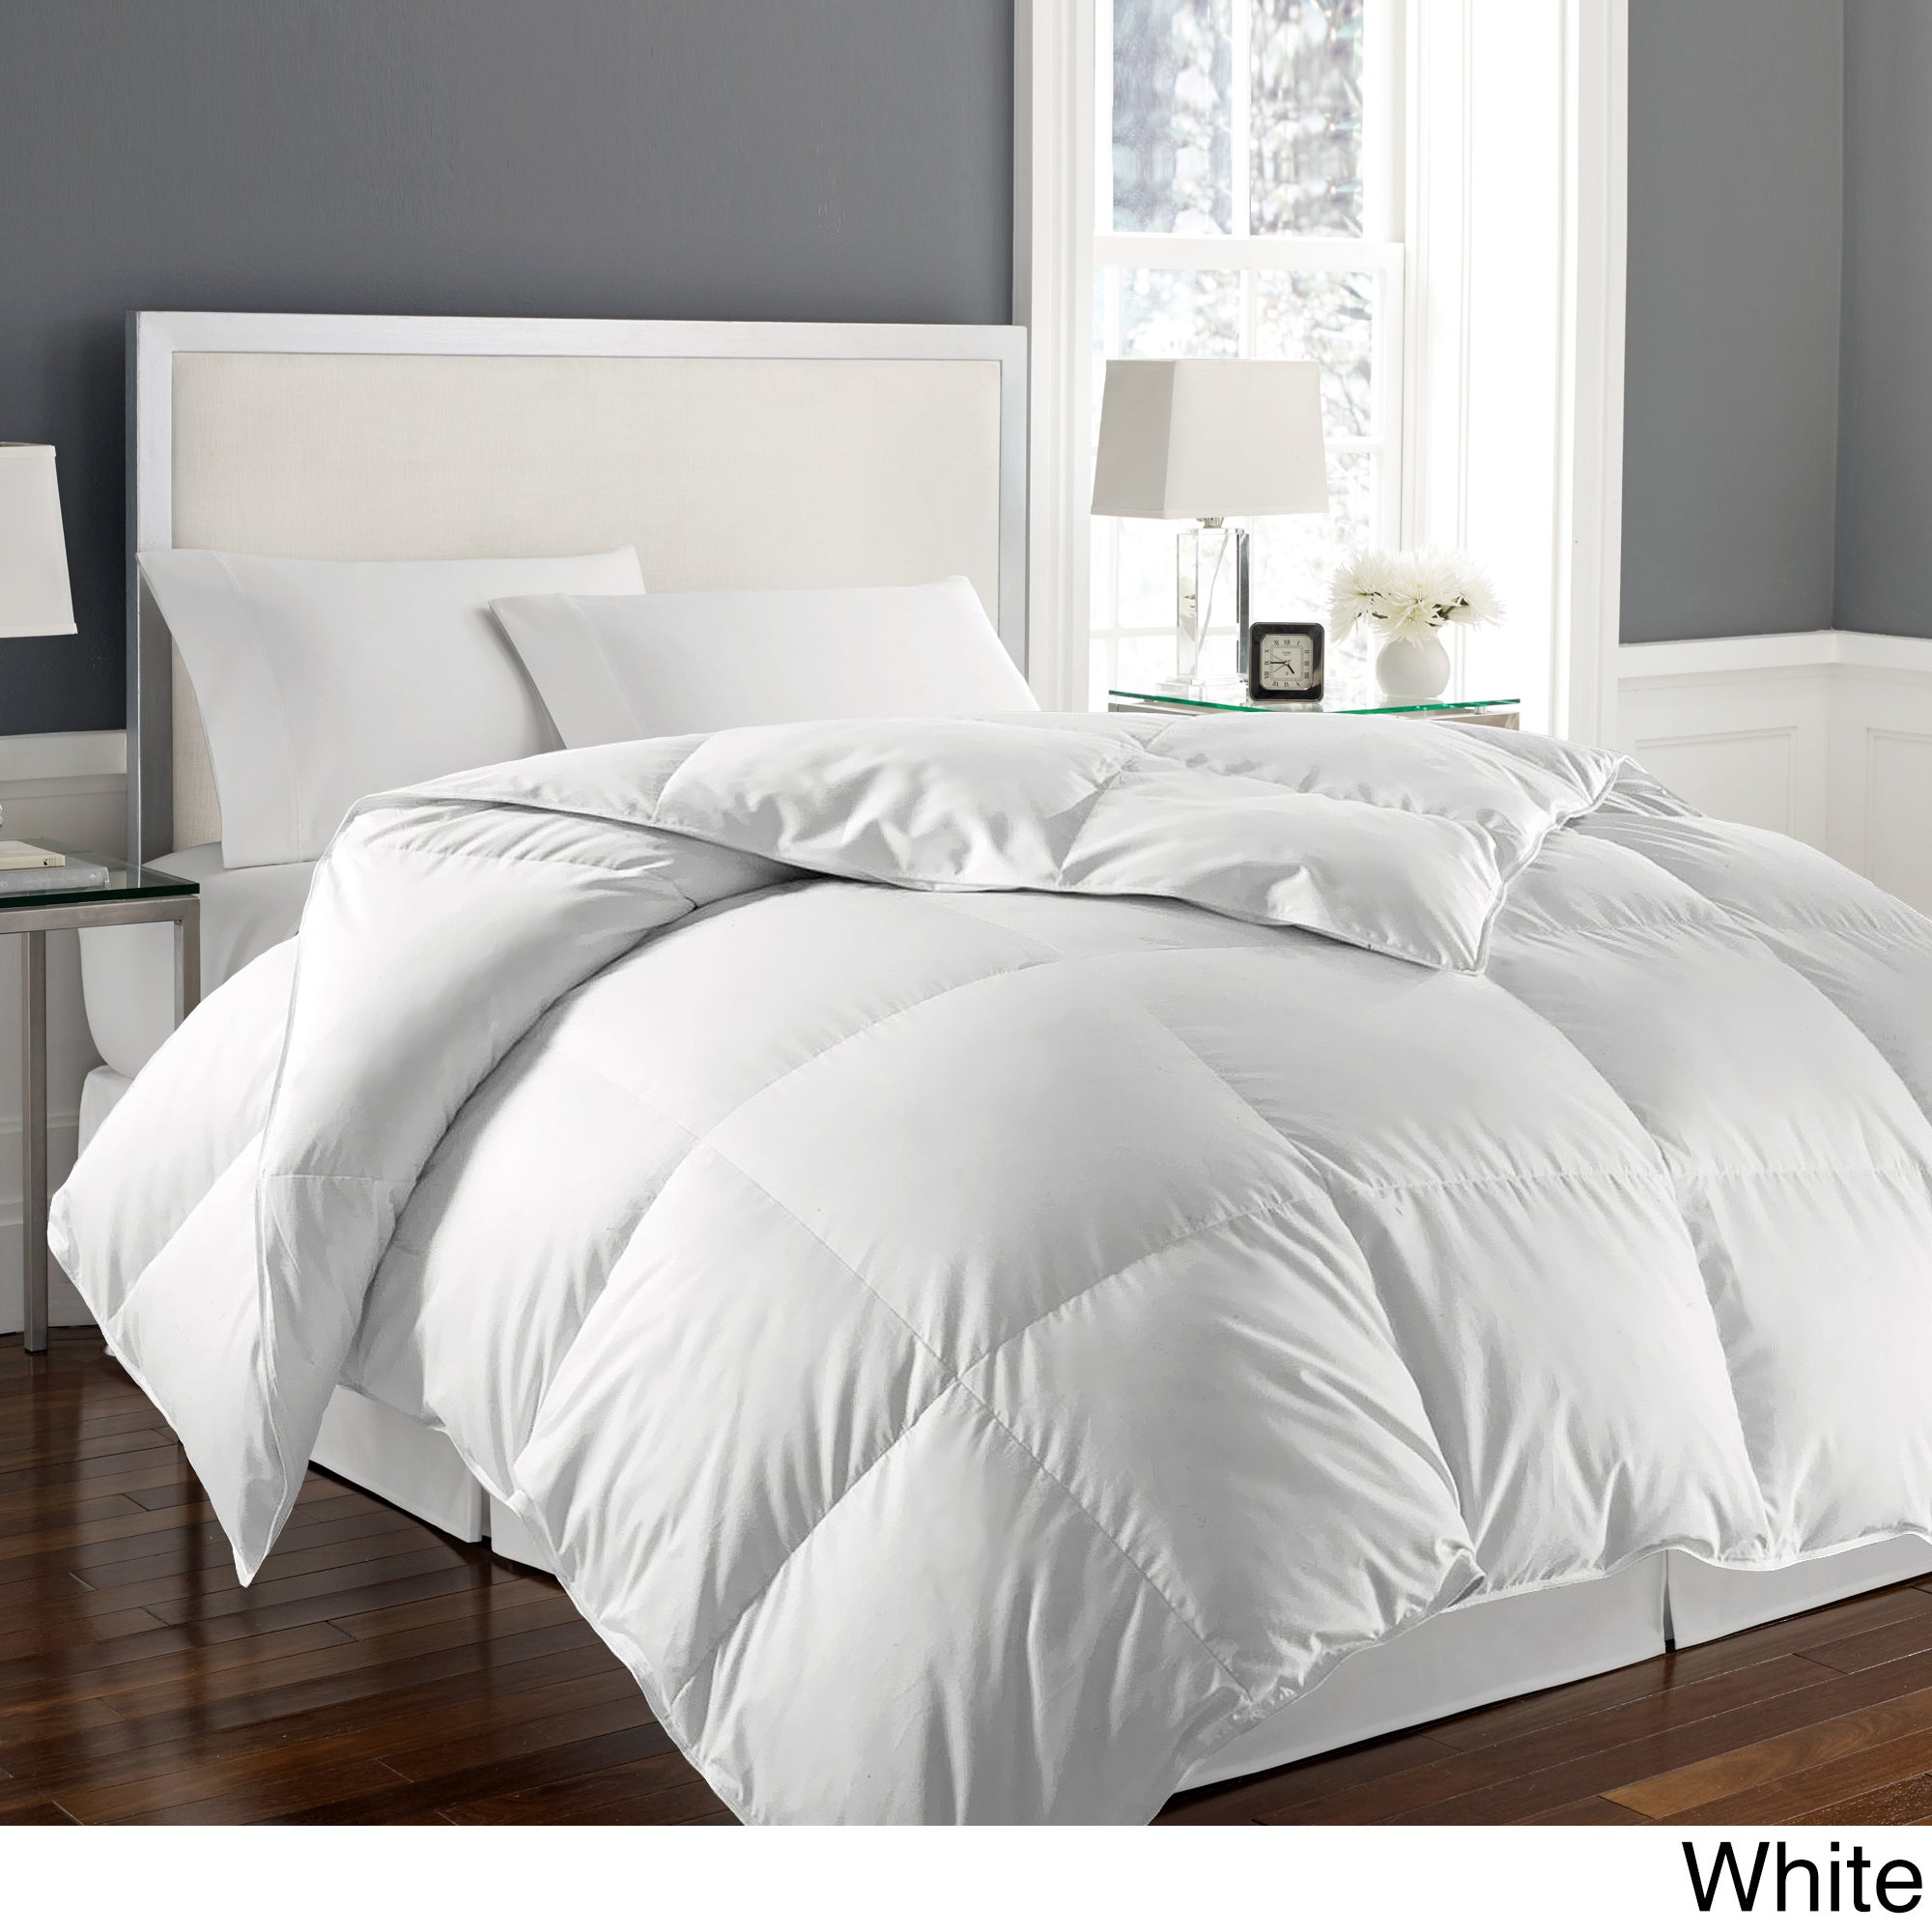 grand shipping reviews alternative bedding overstock thread warmth down count comforter today bath free medium naples hotel product